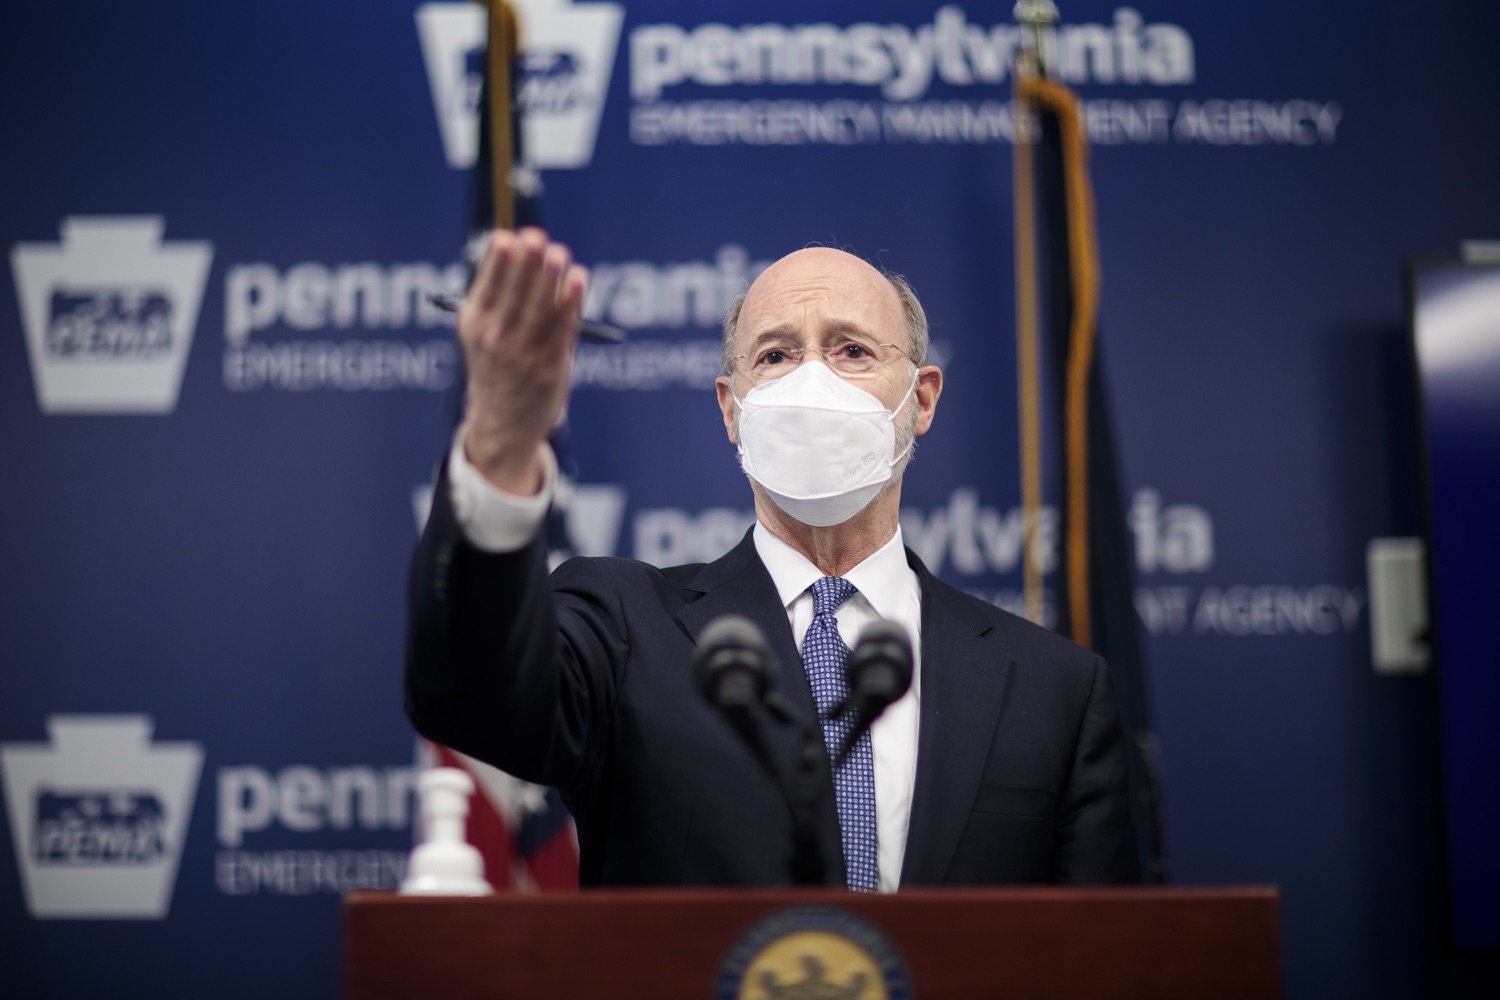 "<a href=""https://filesource.wostreaming.net/commonwealthofpa/photo/18551_gov_charterReform_dz_10.jpg"" target=""_blank"">⇣ Download Photo<br></a>Pennsylvania Governor Tom Wolf speaks to the press.  The urgent need to hold charter schools and cyber charter schools accountable has increased as enrollment and taxpayer costs have swelled during the COVID-19 pandemic. Governor Tom Wolf today unveiled a common sense and fair bipartisan plan that protects students, parents and taxpayers. The plan holds low-performing charter schools accountable to improve the quality of education, protects taxpayers by reining in skyrocketing charter school costs and increases the transparency of for-profit companies that run many charter schools. Harrisburg, PA  February 26, 2021"